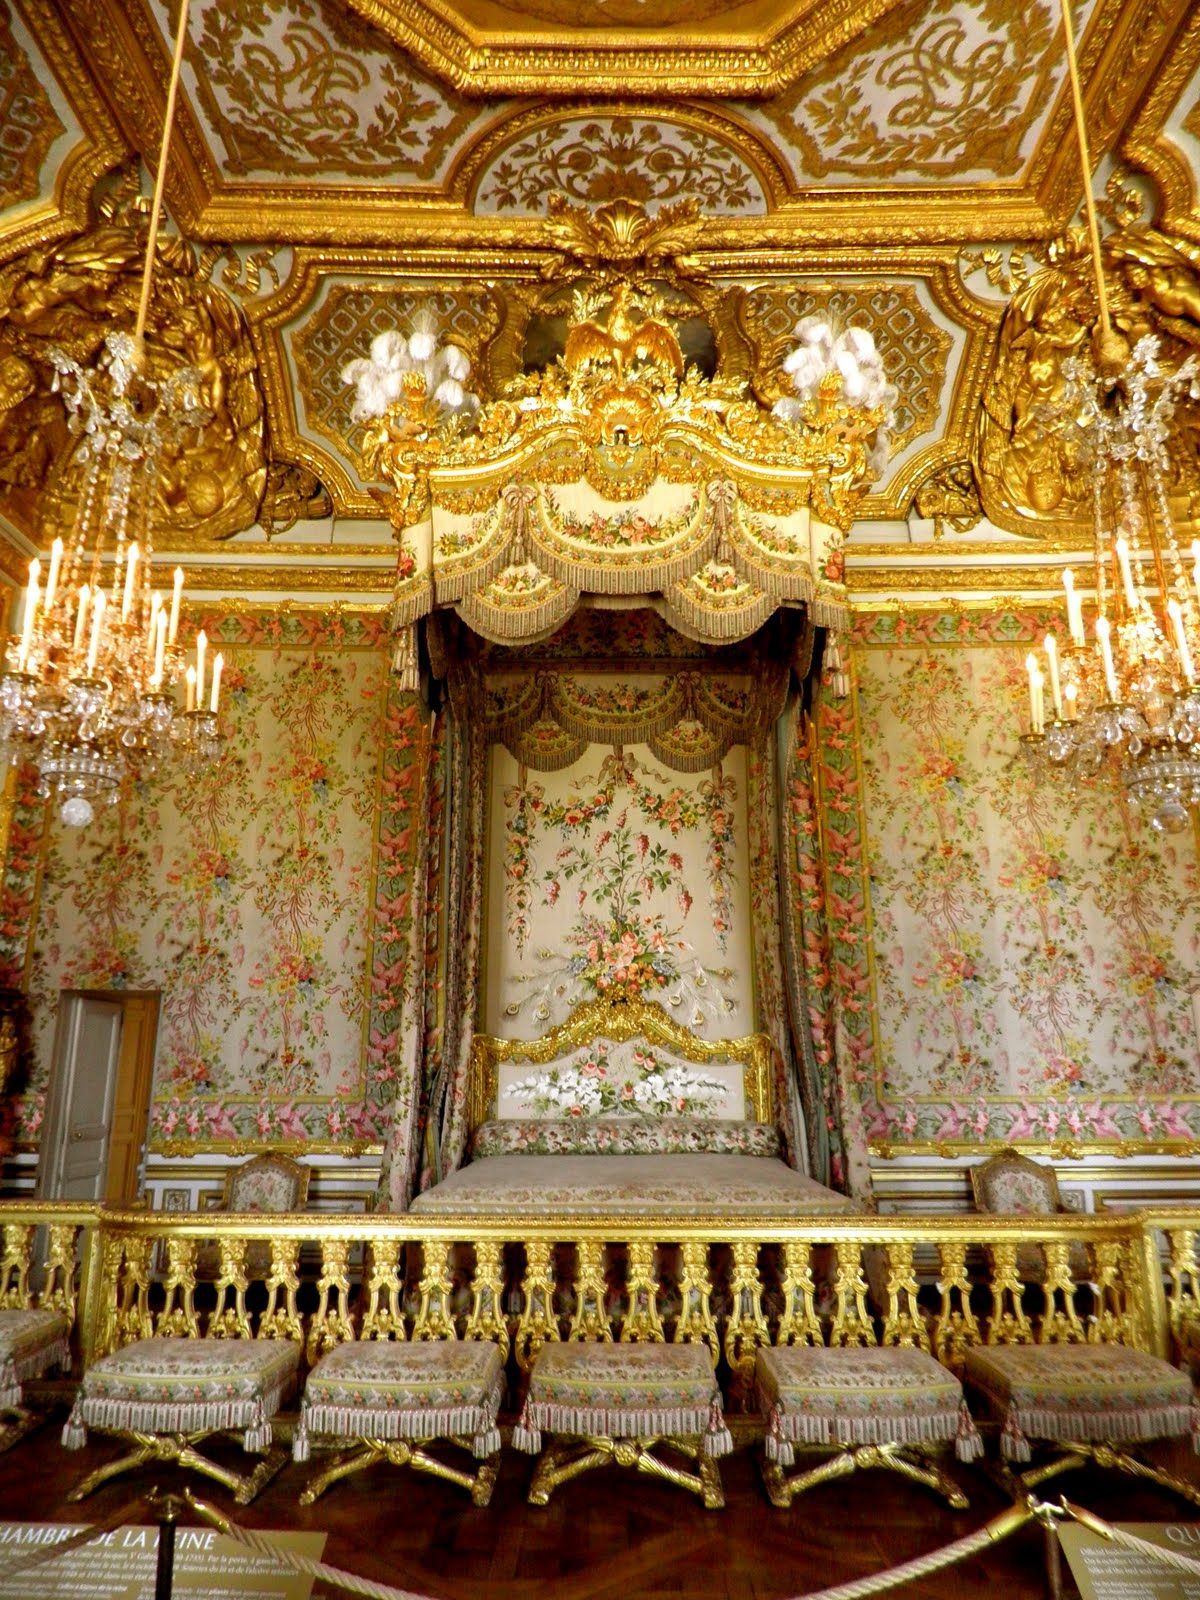 The Queen S Bed Marie Antoinette Palace Of Versailles France